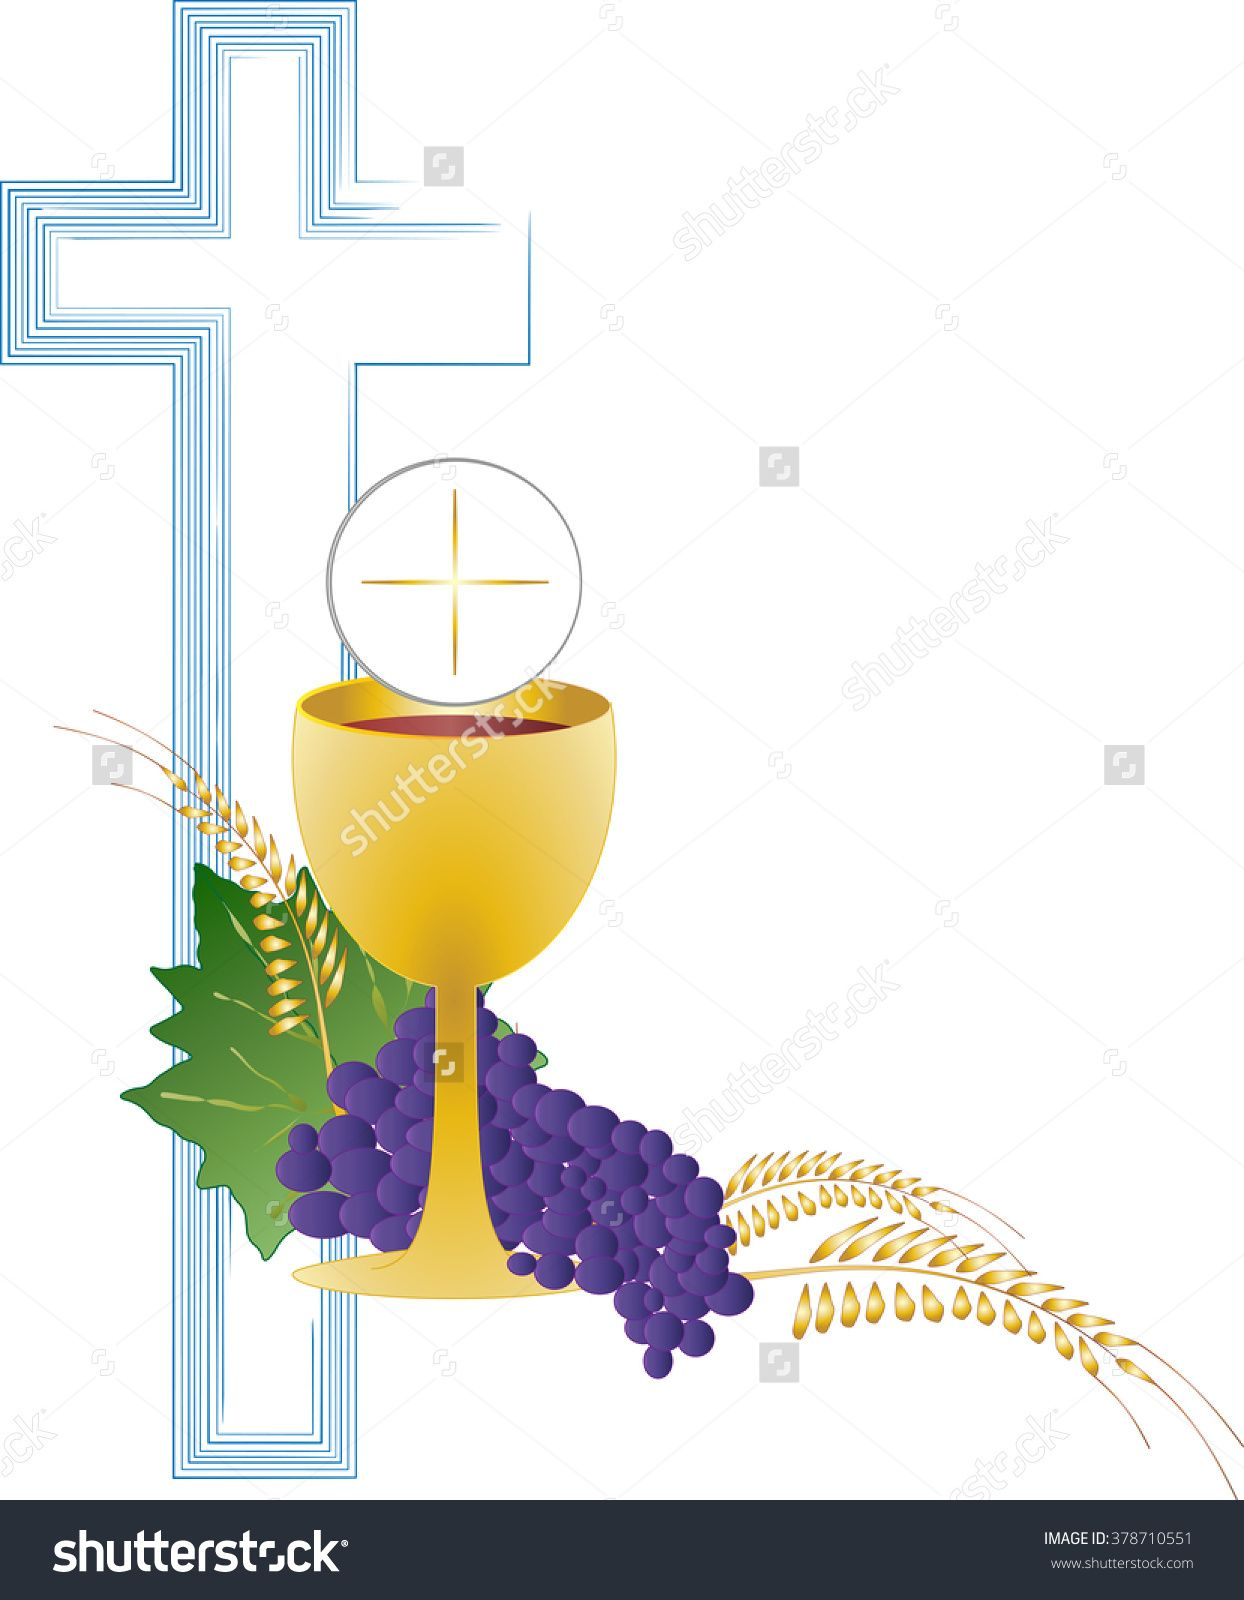 Clipart chalice and bread royalty free Eucharist Symbol Of Bread And Wine, Chalice And Host, With Wheat ... royalty free